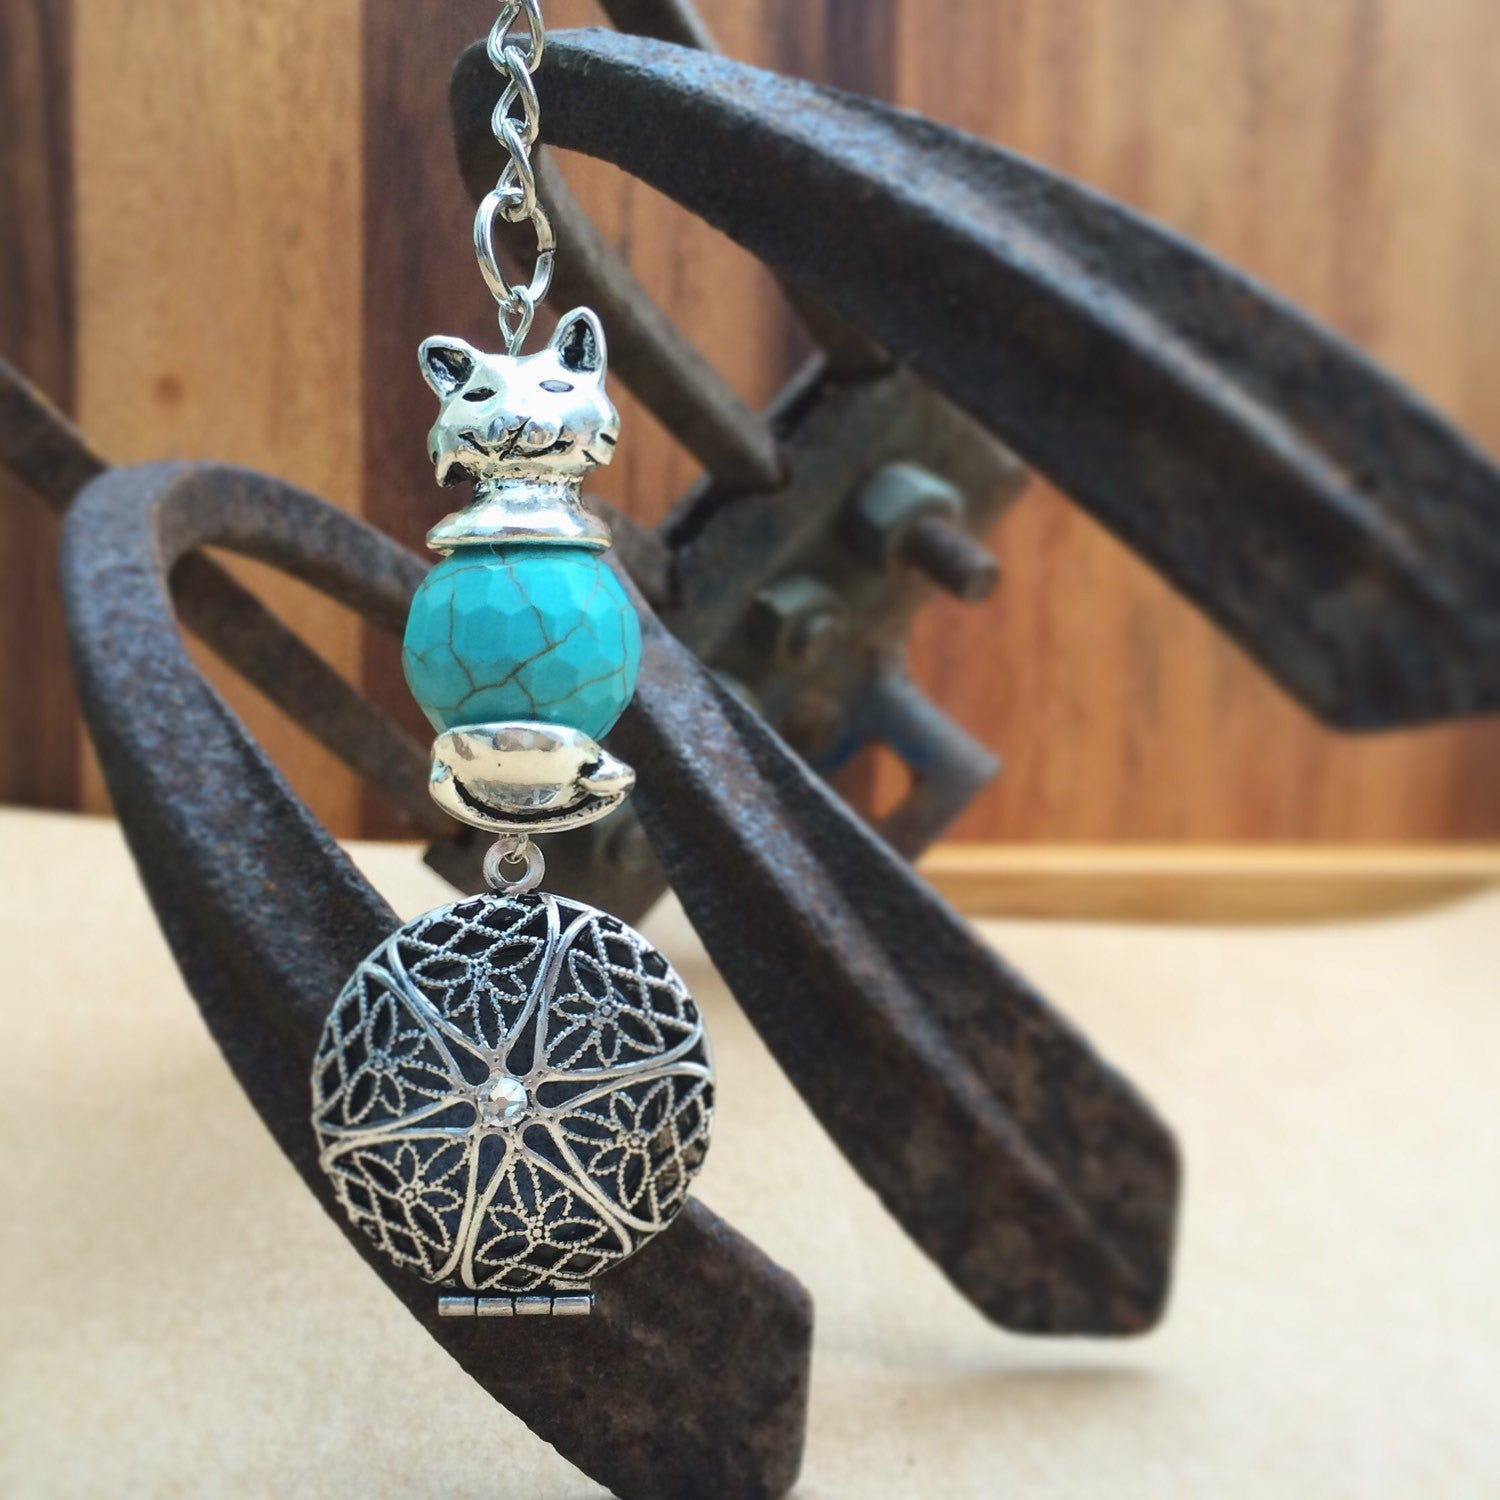 Turquoise Antique Silver Tone Kitty CAT Essential Oil Diffuser Locket Keychain Keyring with Swarovski Crystal Eclectic